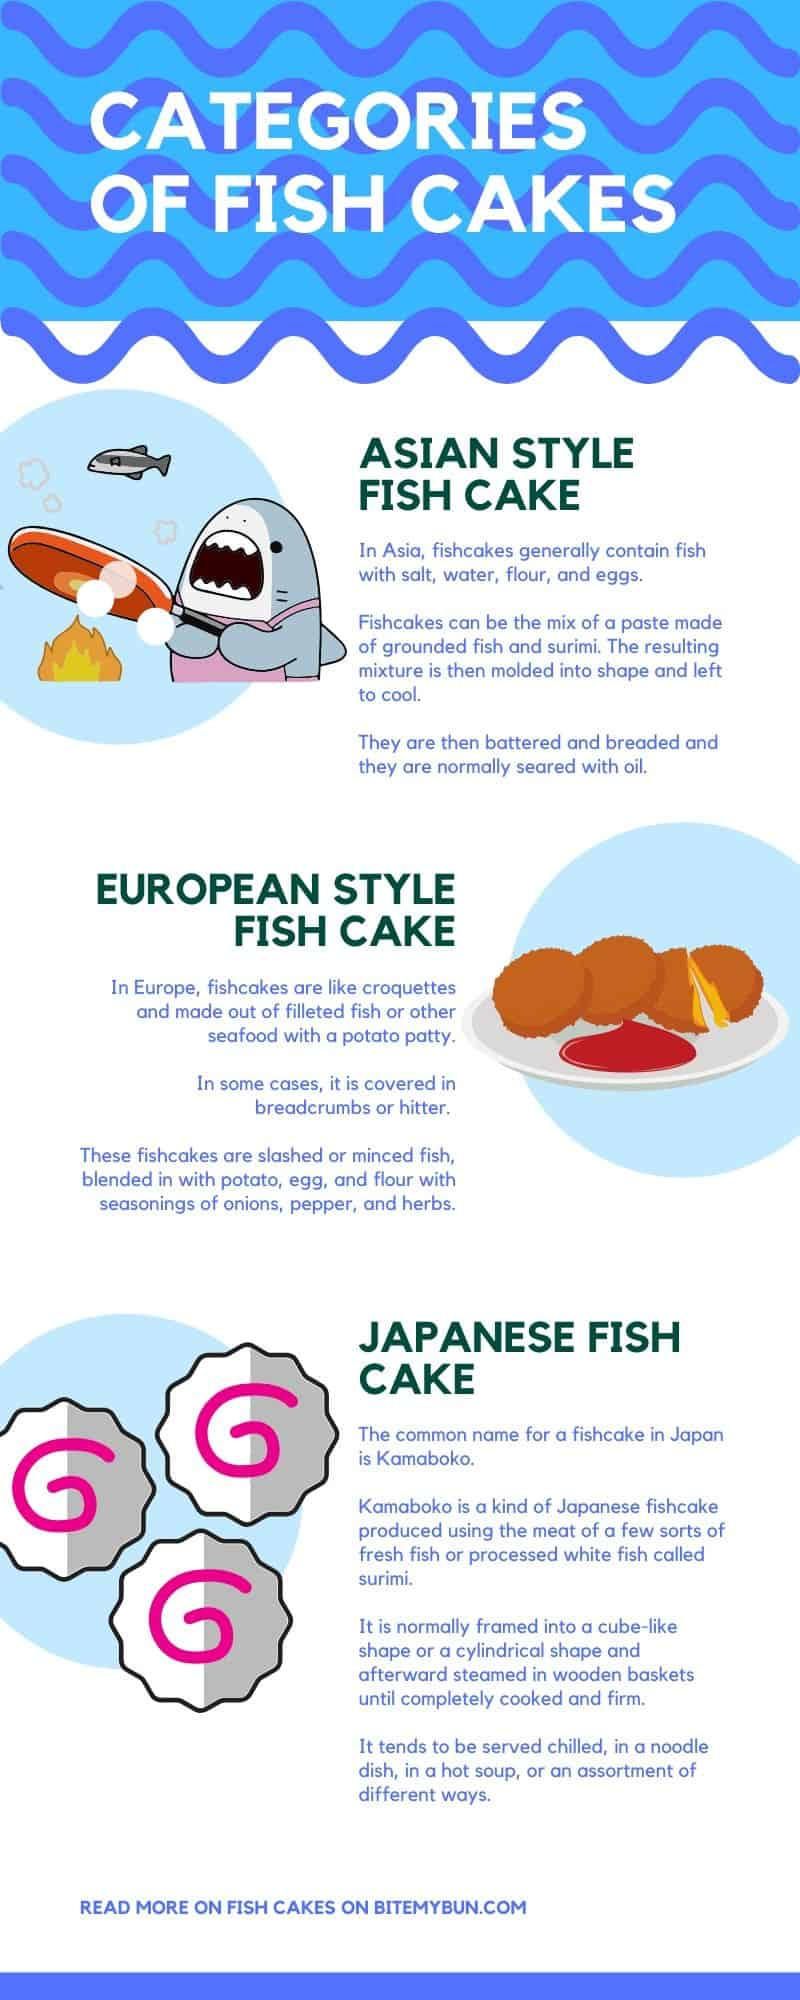 Categories of fish cakes